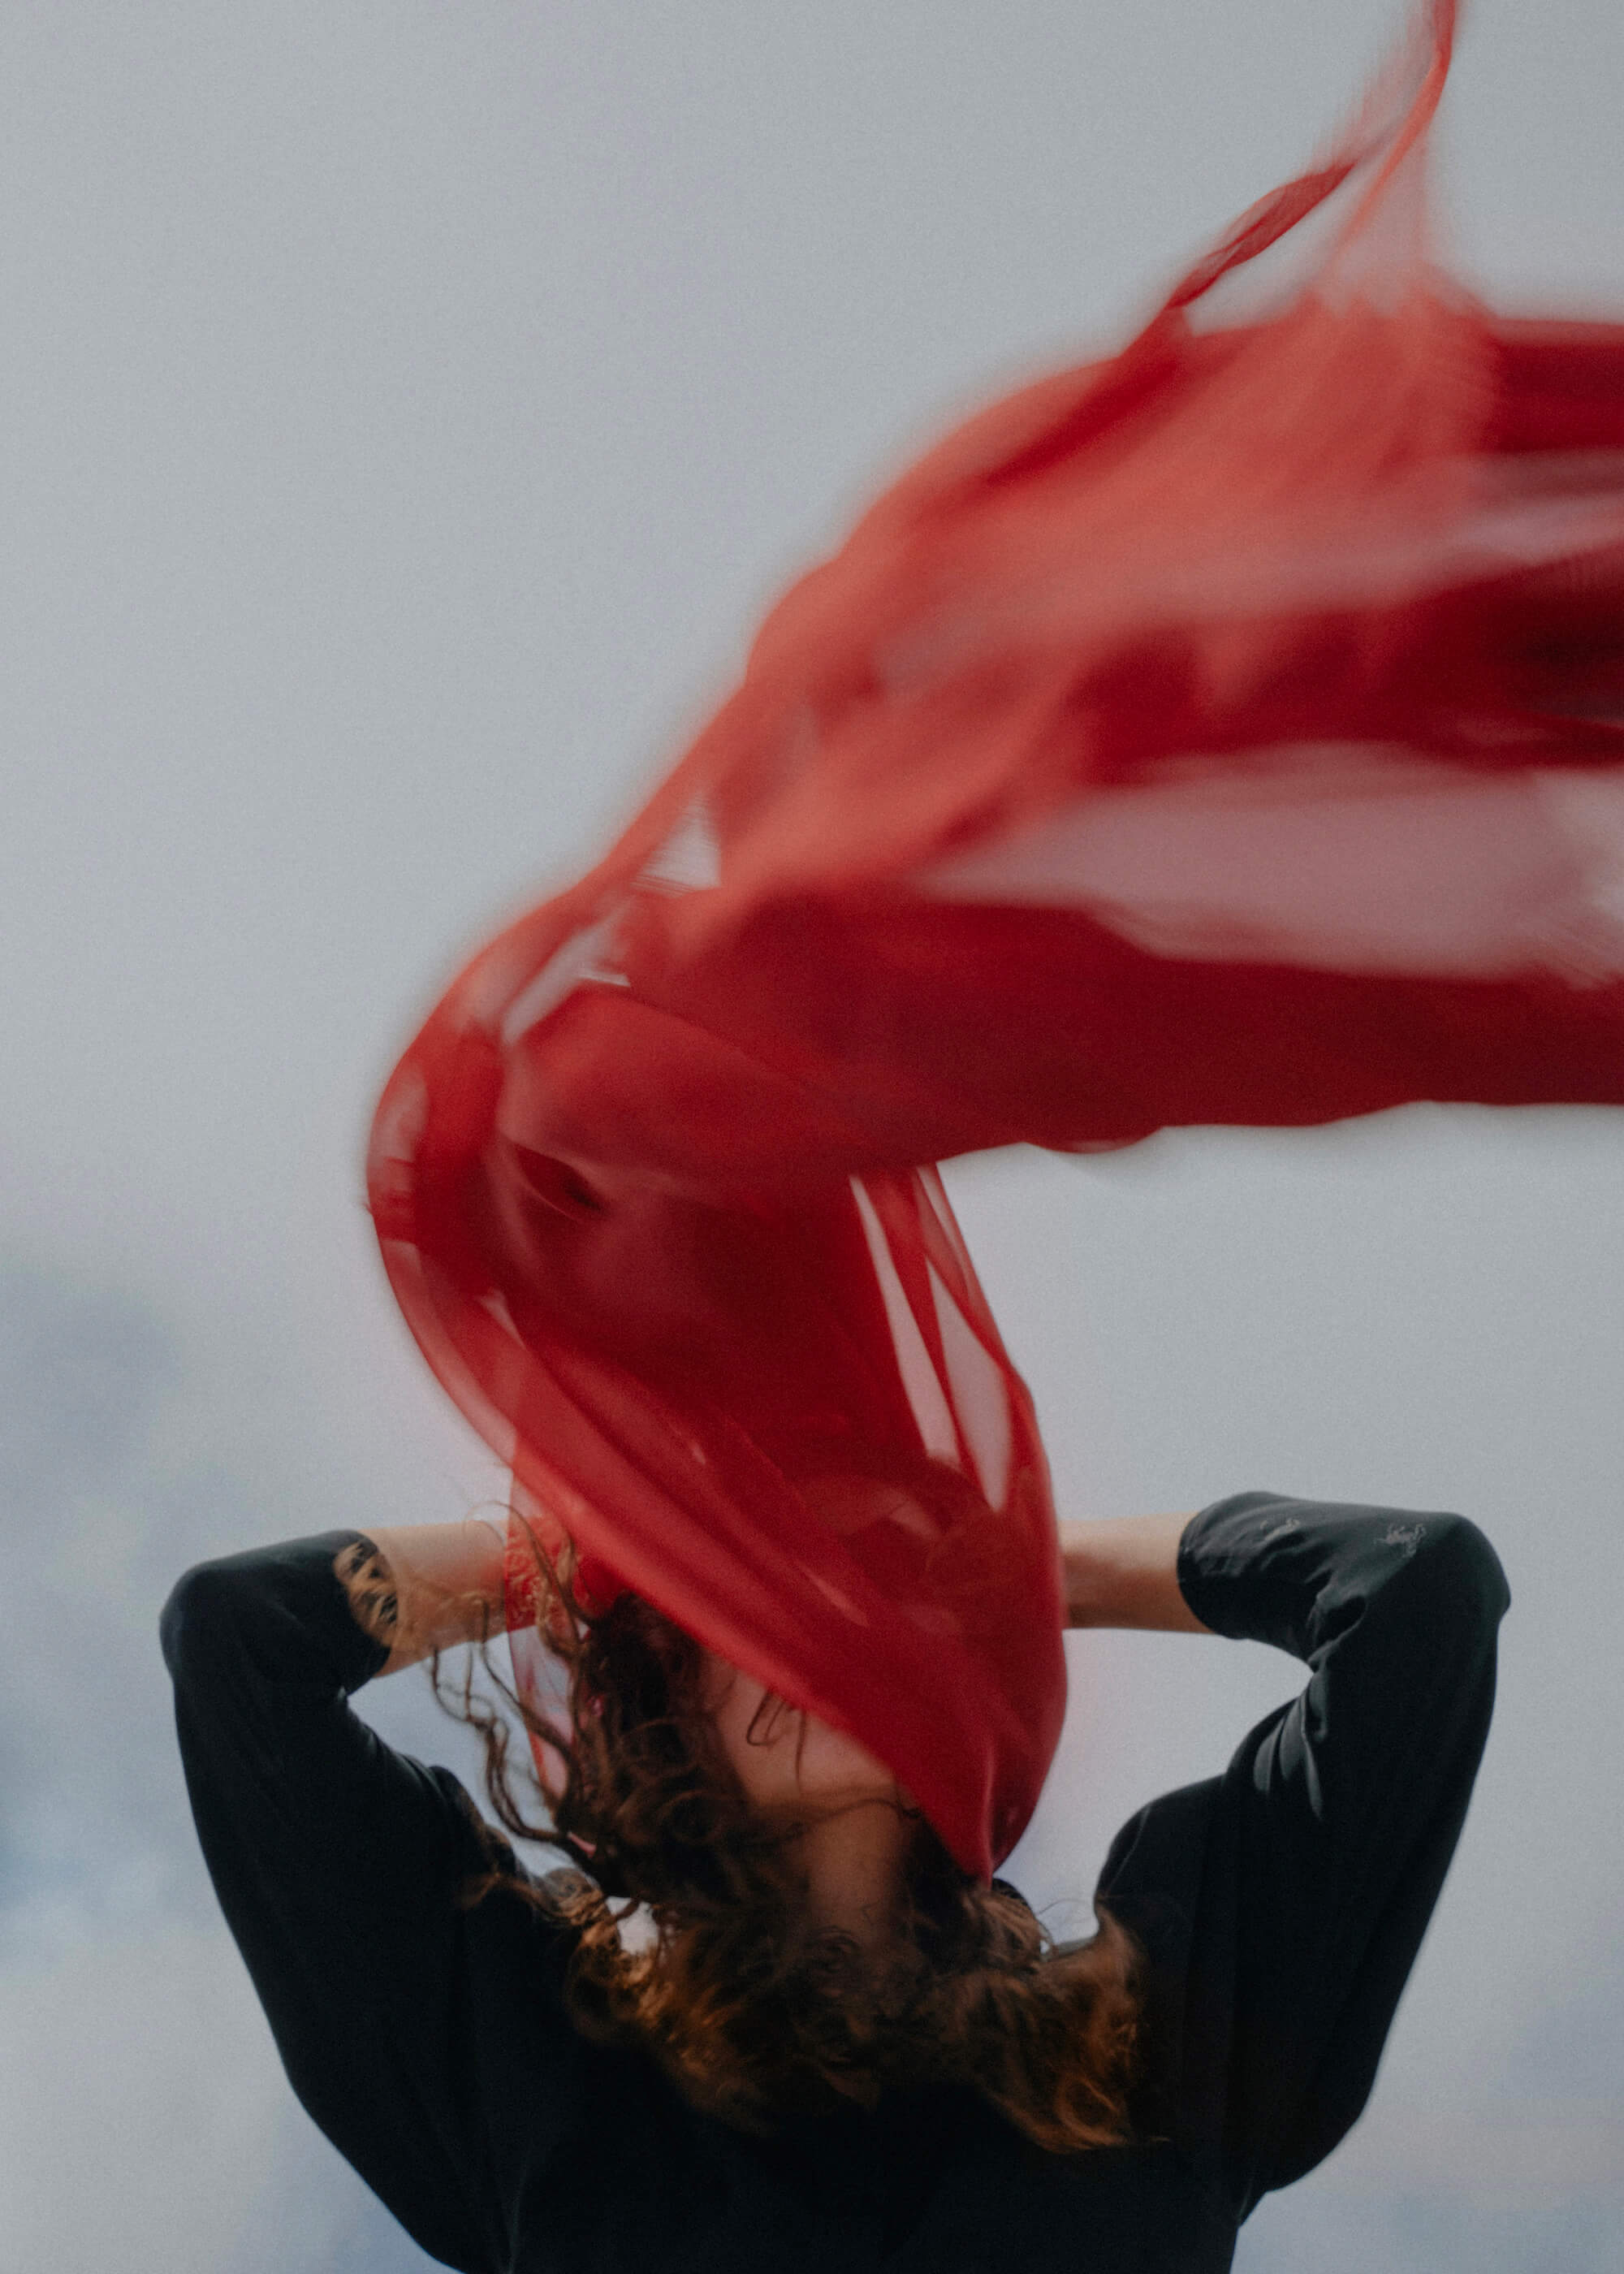 Portrait of girl with red fabric during Belarus protests by Krystsina Shyla, winner of the Beazy November Contest